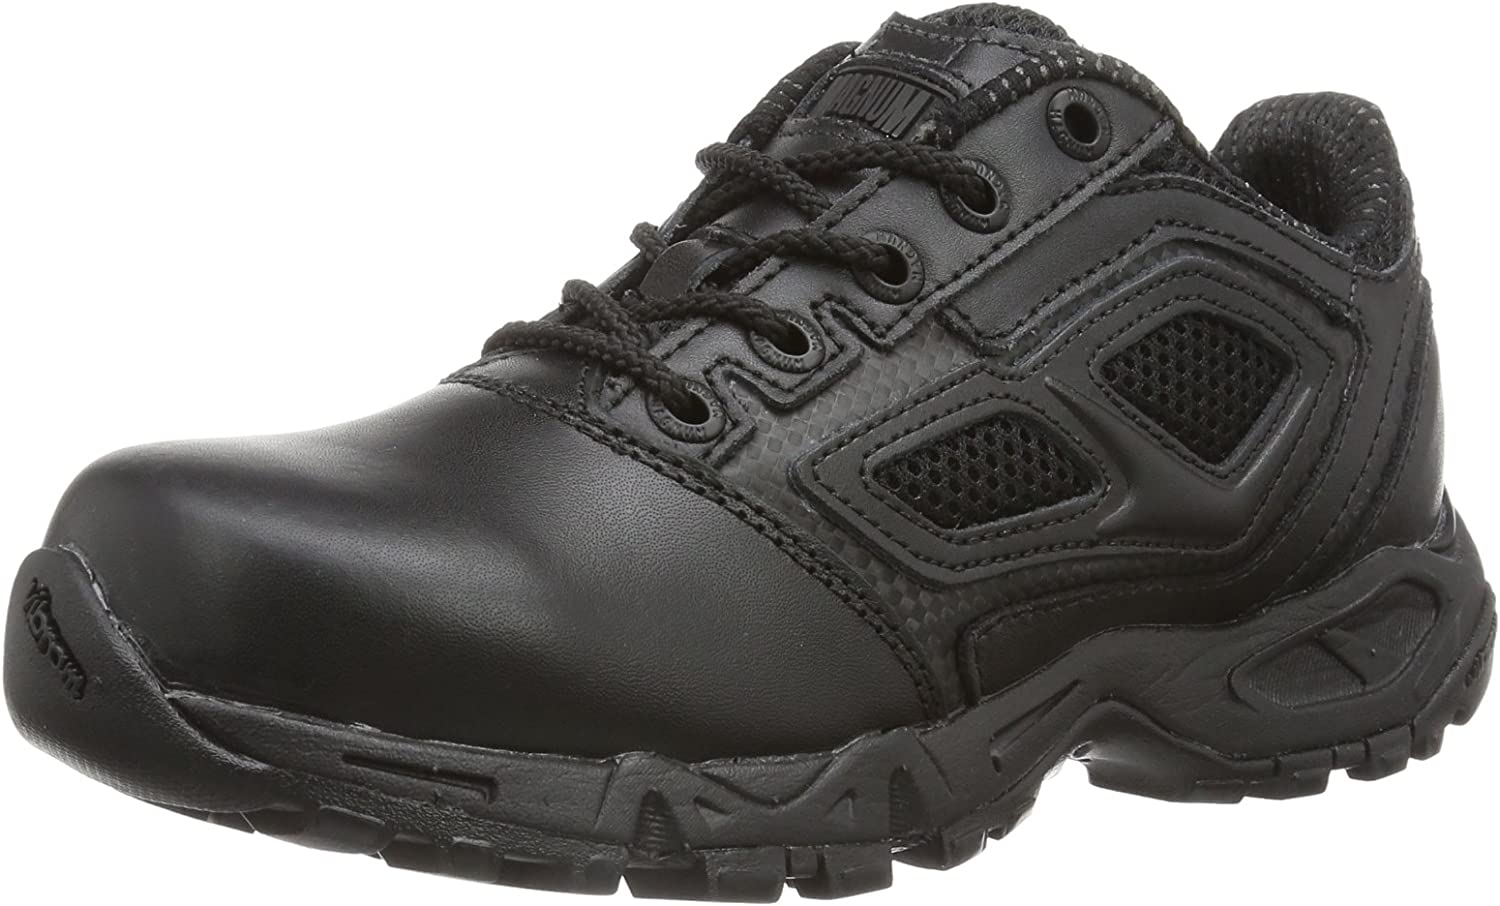 Magnum Unisex Adults' Elite Spider 3.0 Work shoes